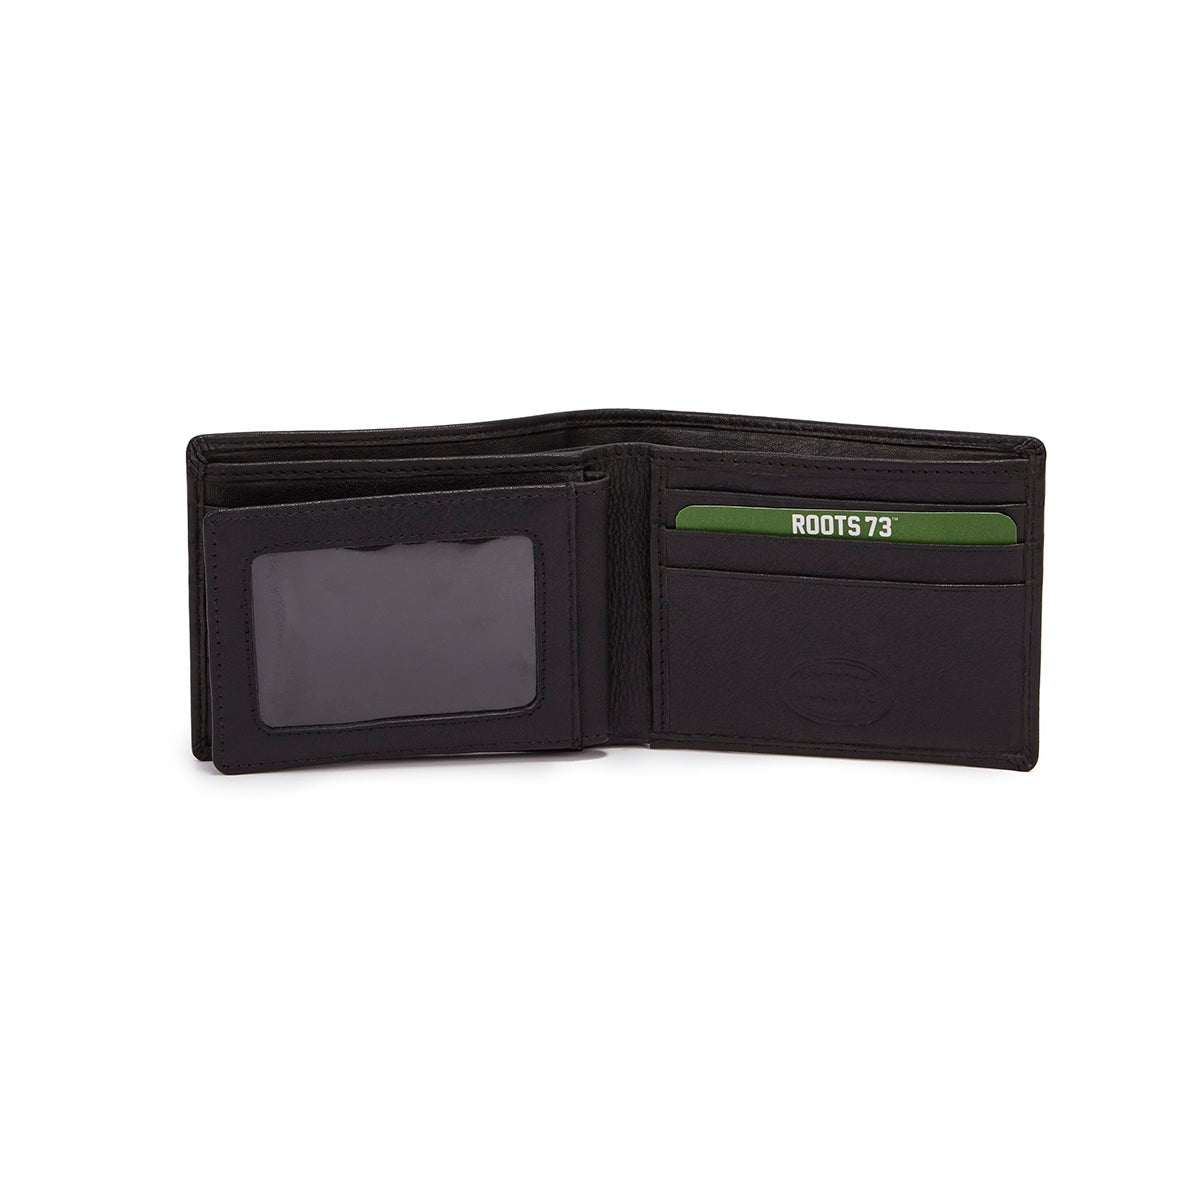 Mns Roots73 RT22552 blk folding wallet